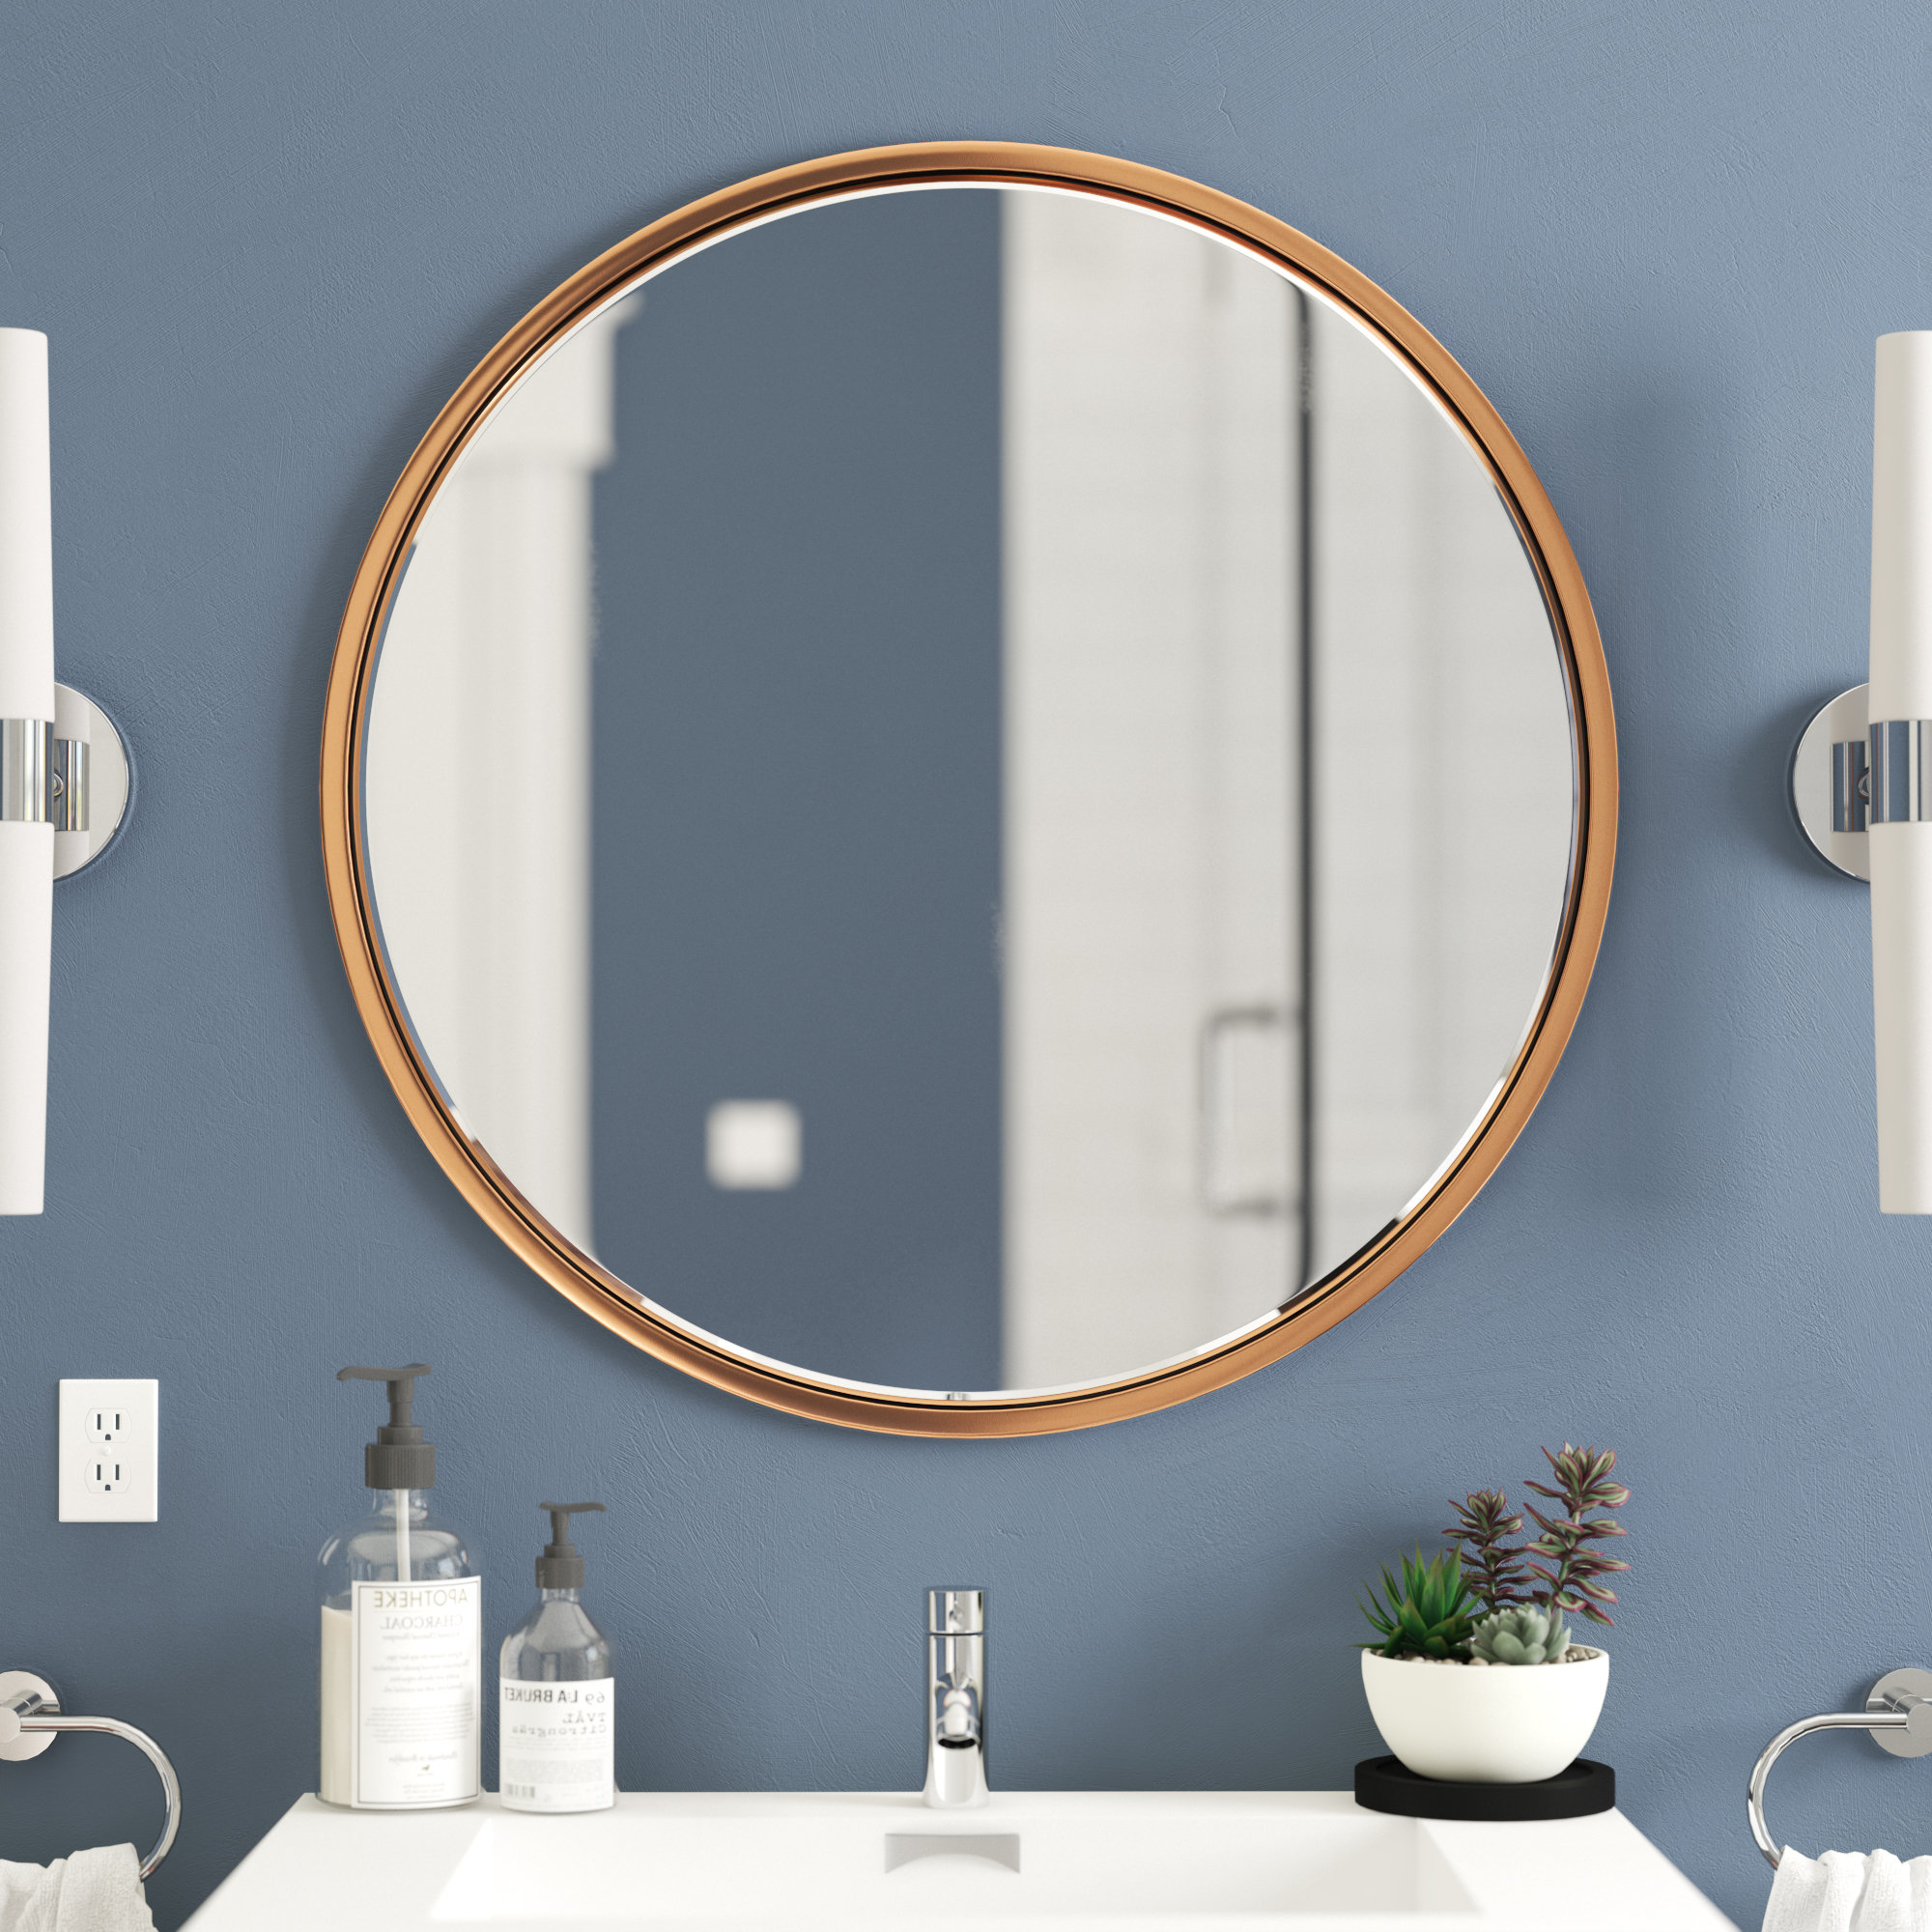 Most Recently Released Dahlgren Wall Bathroom/vanity Mirror For Loftis Modern & Contemporary Accent Wall Mirrors (Gallery 18 of 20)